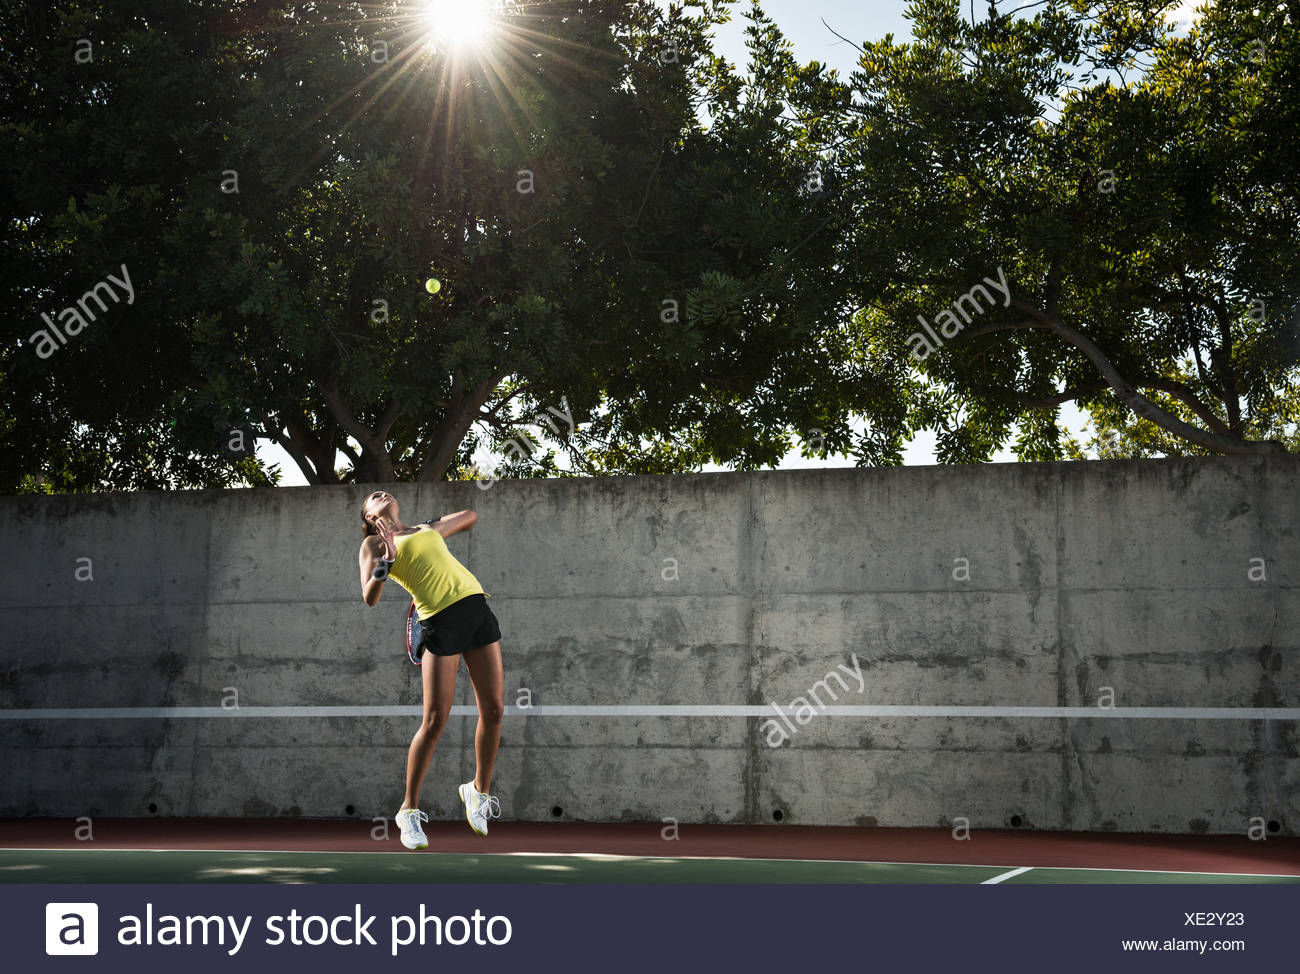 Tennis player hitting ball Photo Stock